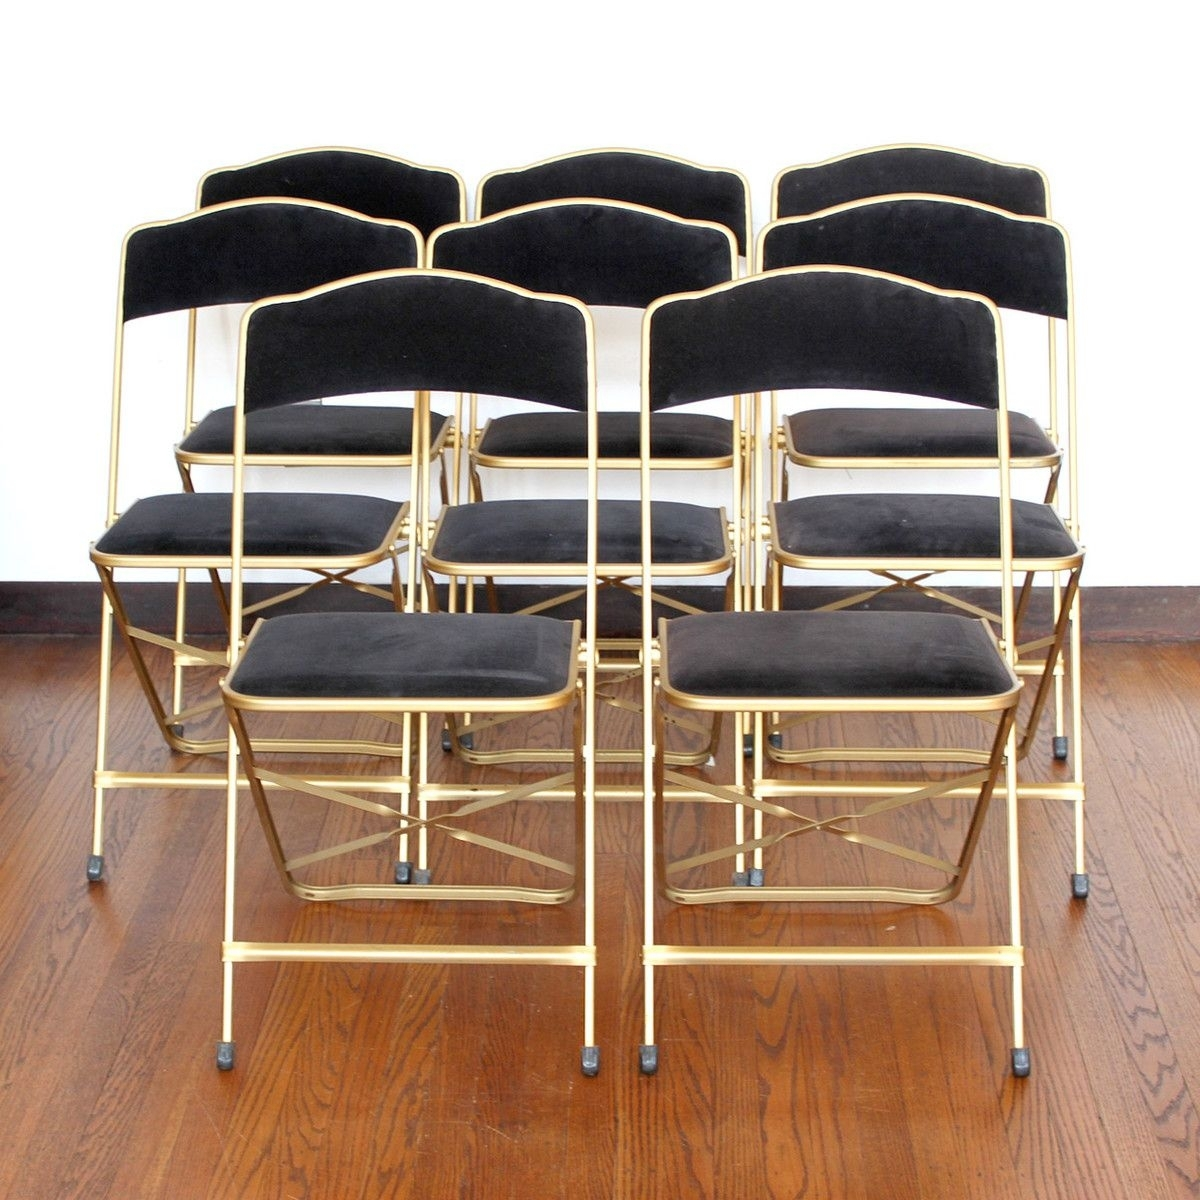 Gold Folding Chairs Ideas On Foter